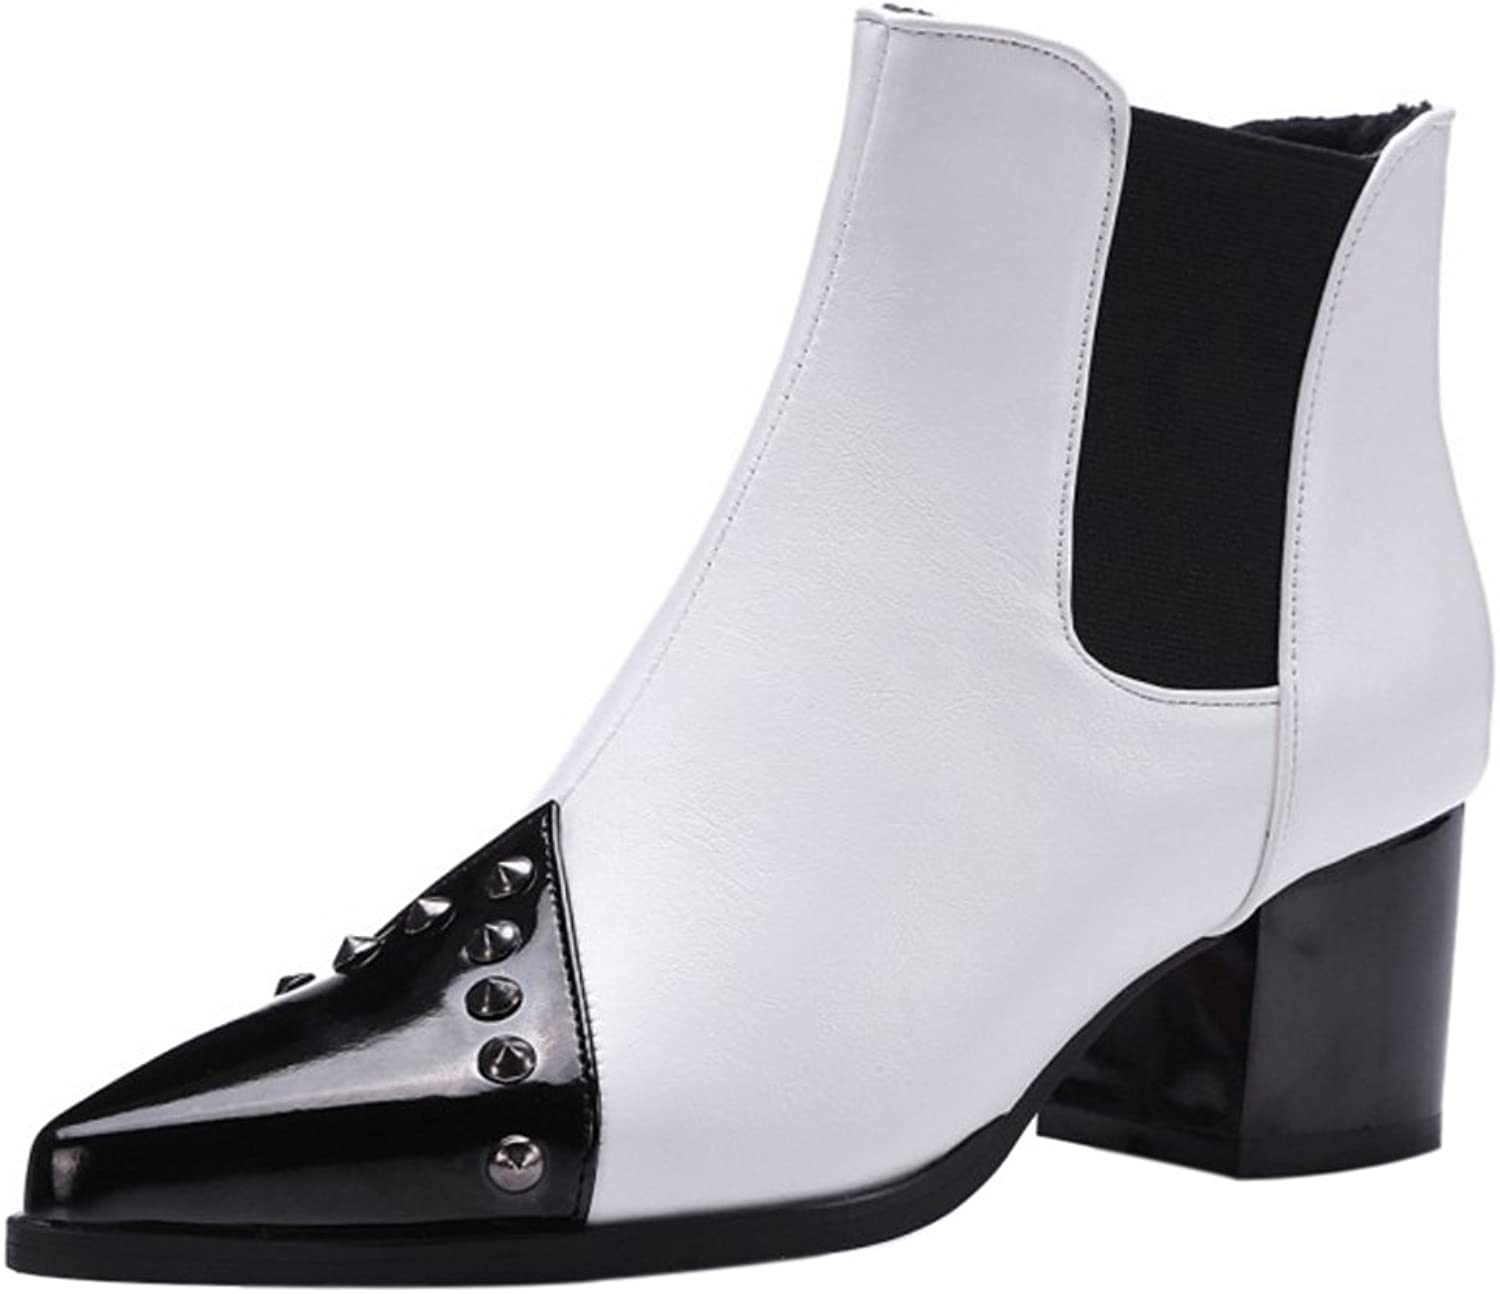 KemeKiss Women Autumn Winter Pull On Chelsea Boots Rivets Boots Ankle High